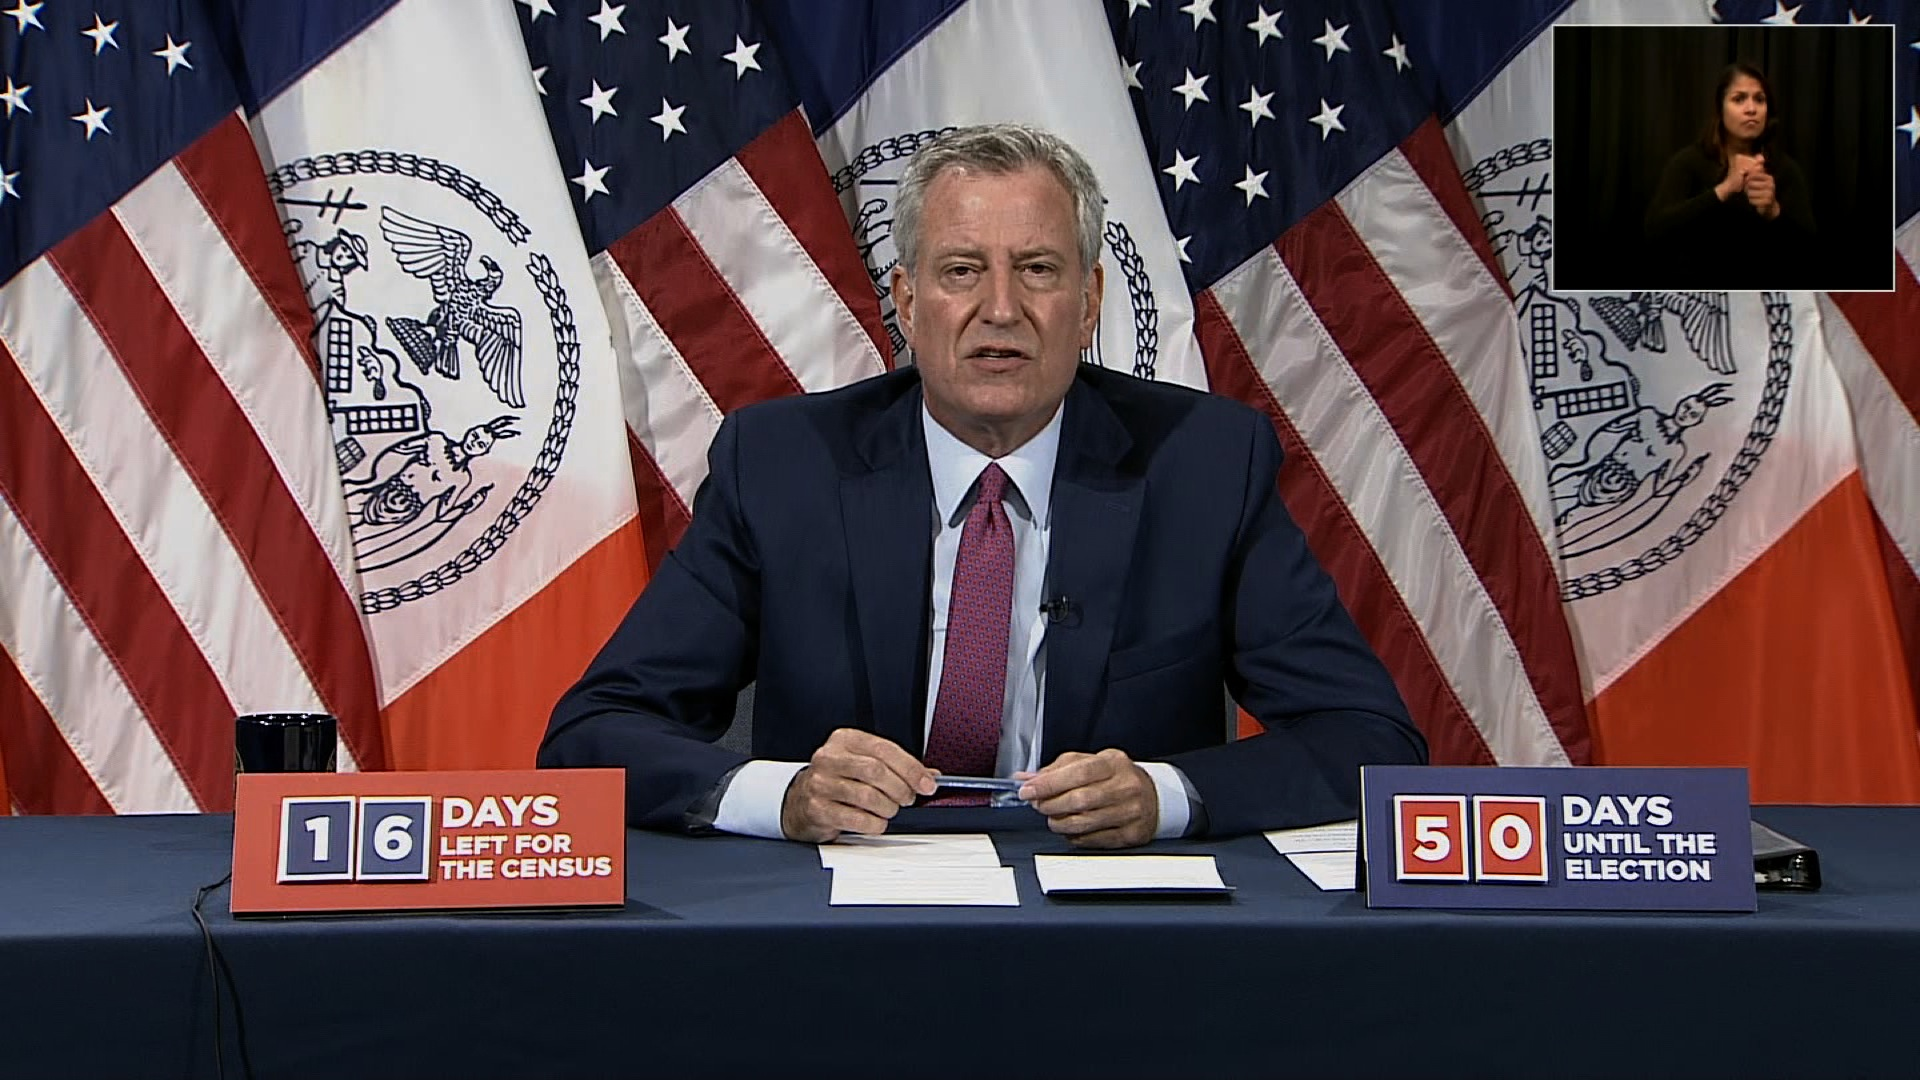 New York City Mayor Bill de Blasio speaks during a press conference in New York on September 14.